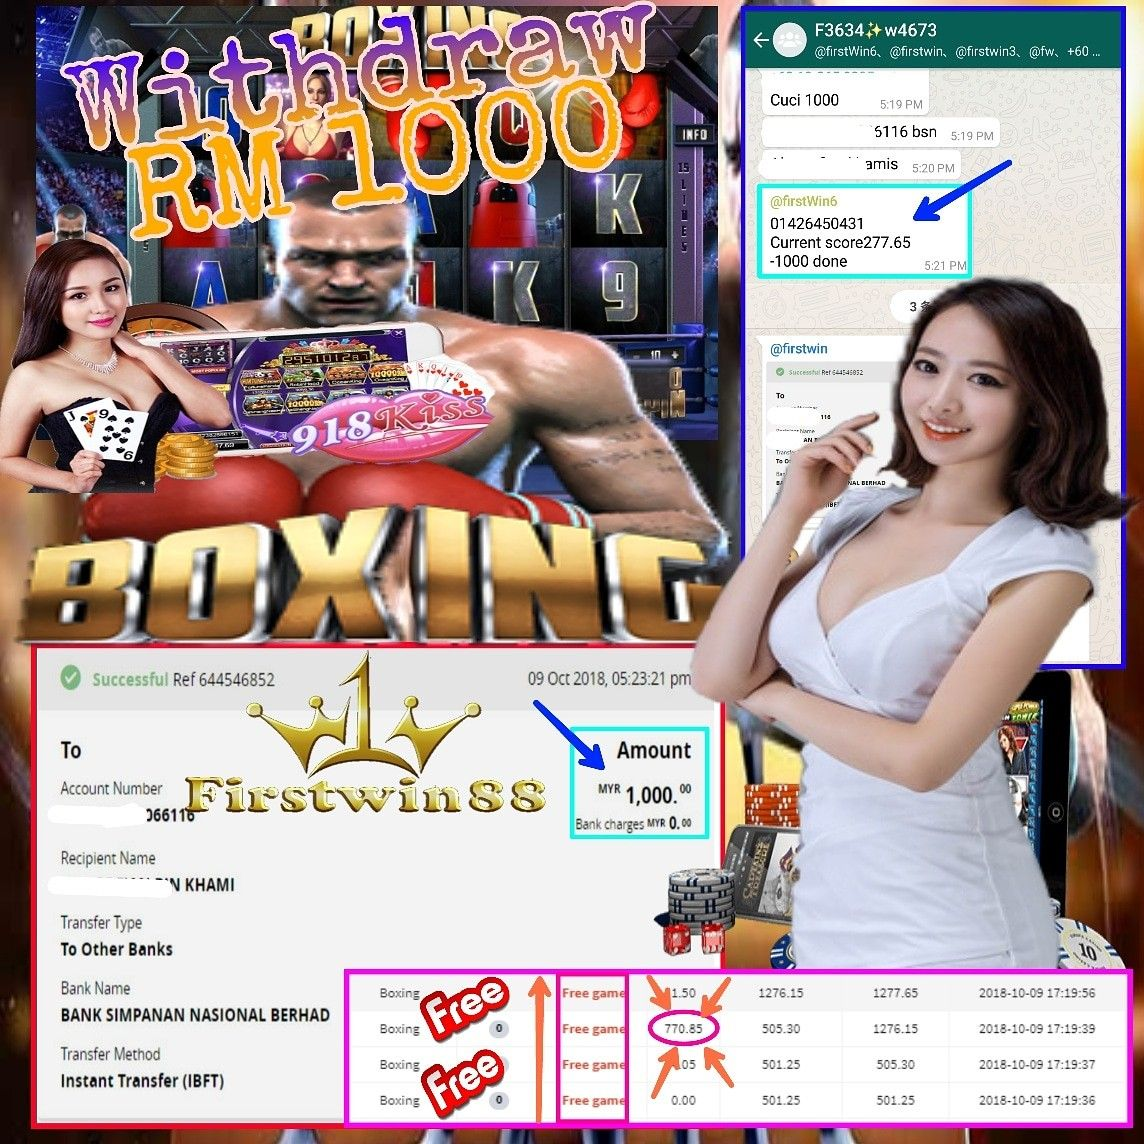 Congratulations to #Firstwin88#918kiss MemberF3634 SlotGame#Boxing Won PriceRM1000 #FreeGame #BigWin️ 🇲🇾#malaysia🇲🇾 wechat️firstwin88 whatsapp️ #918kiss #OnlineCasinoMalaysia…